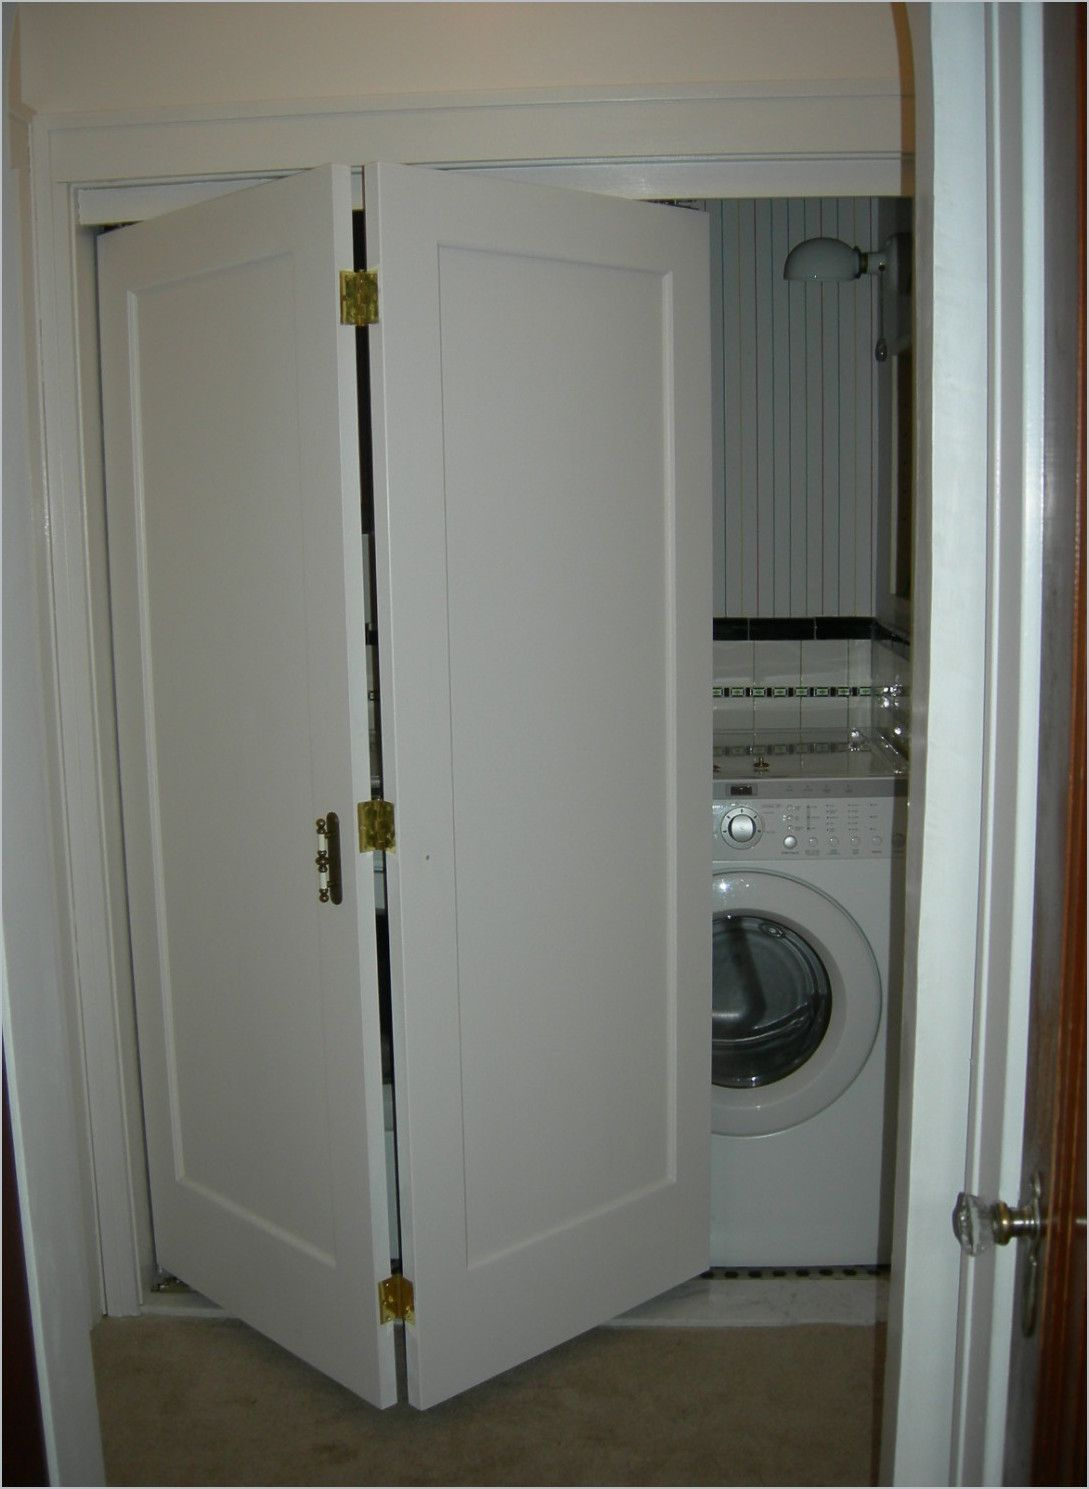 Latest Posts Under: Bathroom doors